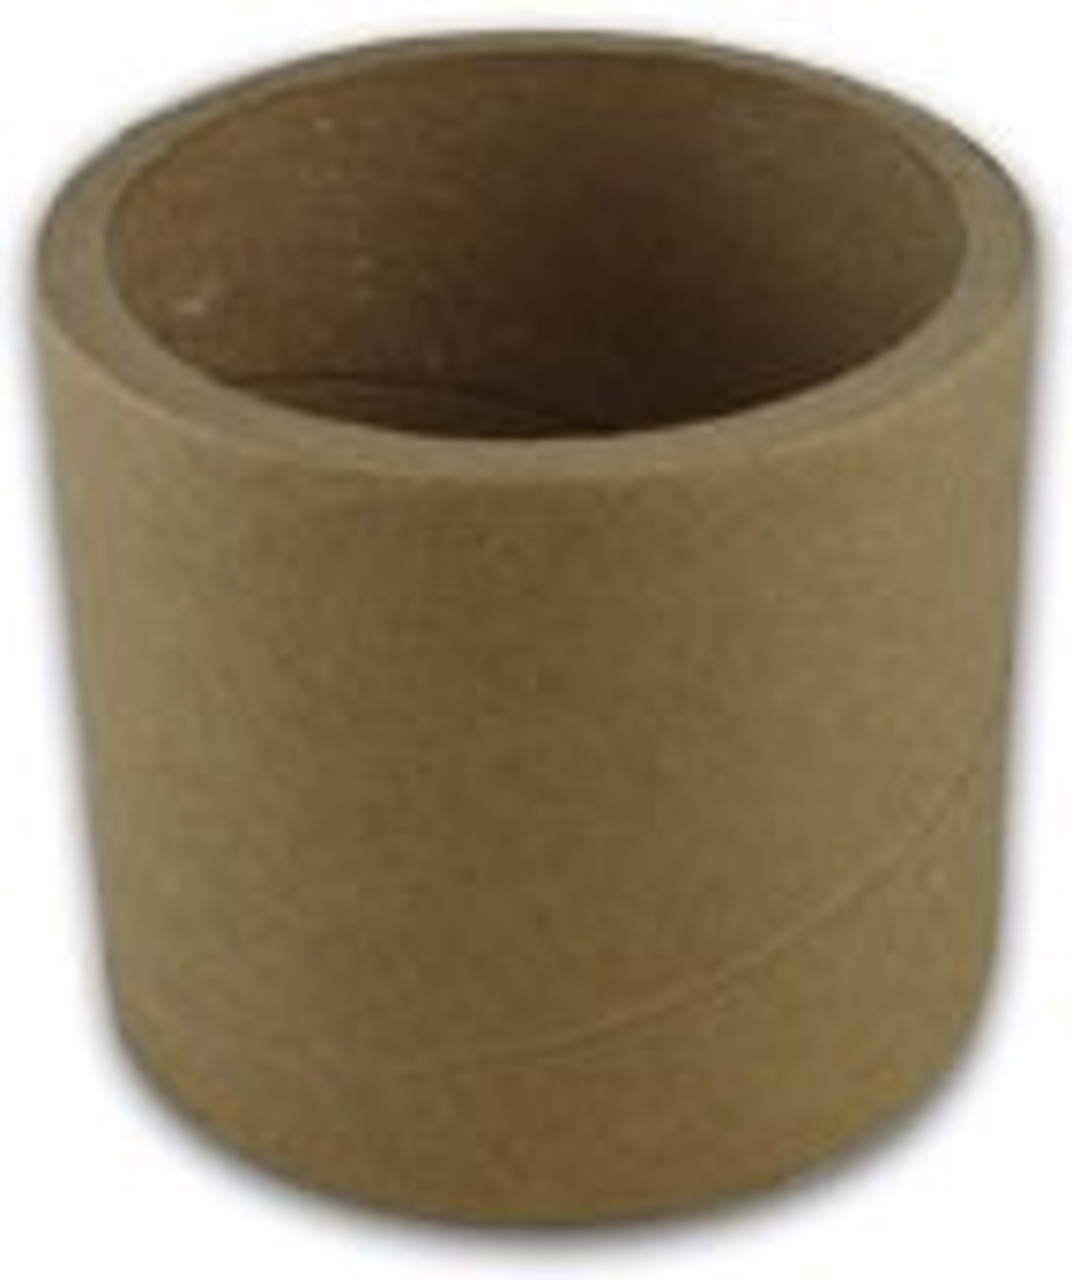 "Empty Cores 3"" X 3 1/8"" wide - Box of 25 